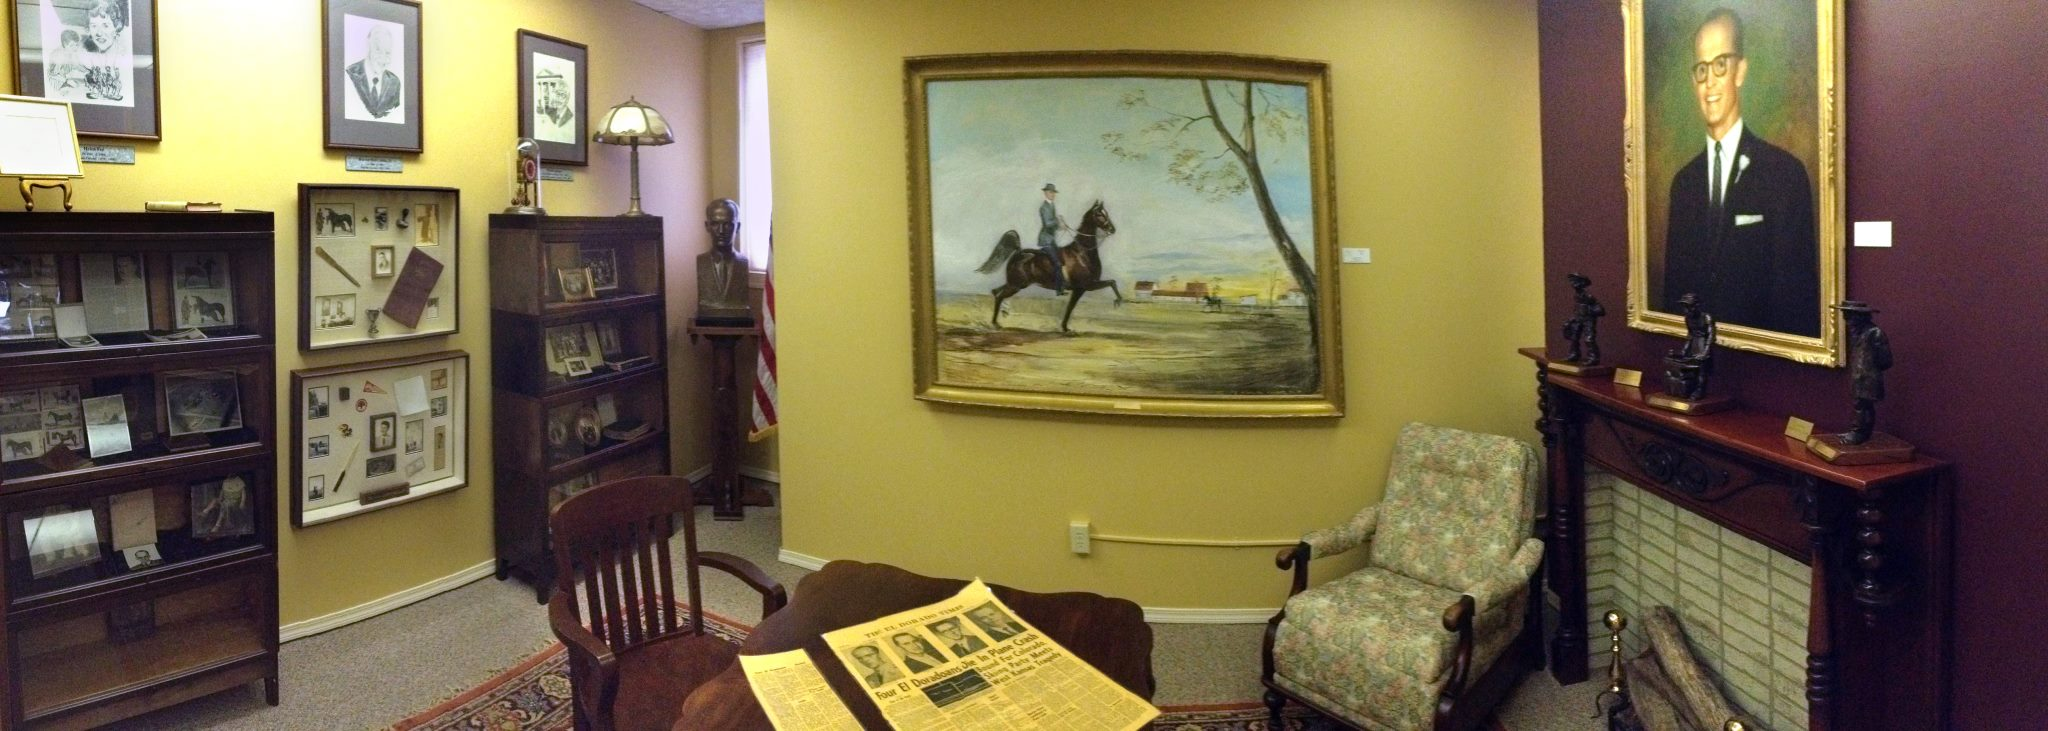 A gallery with some memorabilia and facts about the founder and his son. Credit: The Coutts Museum of Art